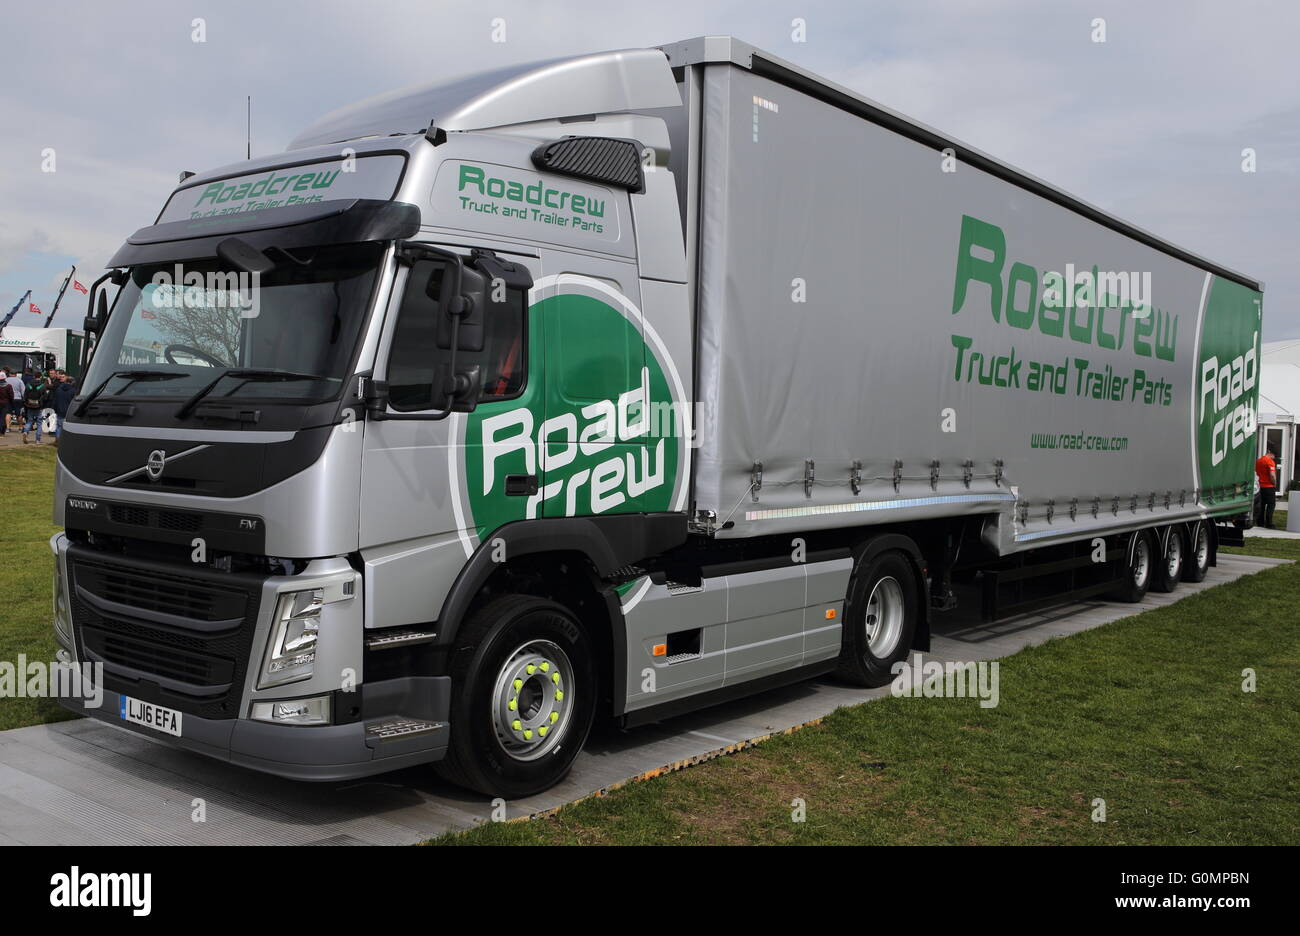 Volvo tractor unit - Articulated lorry unit - Volvo Road Crew - Stock Image